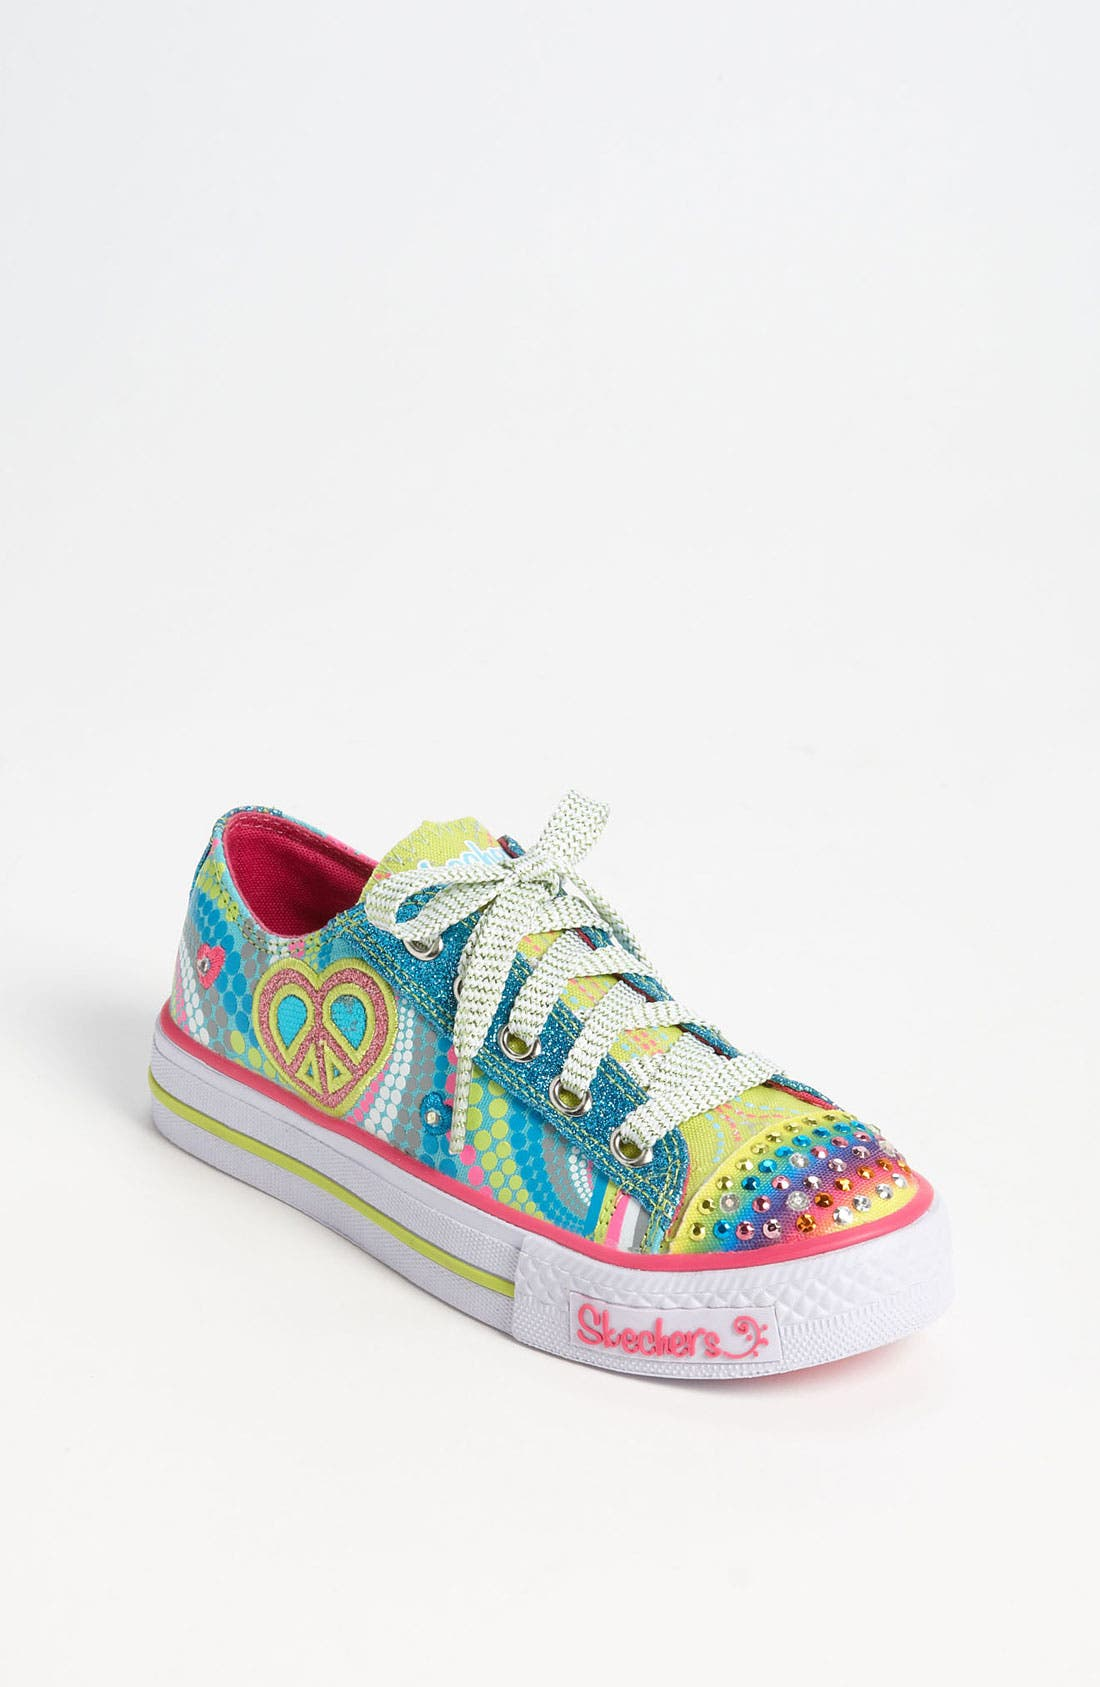 Alternate Image 1 Selected - SKECHERS 'Shuffles - Lights Heart Sparks' Sneaker (Toddler & Little Kid)